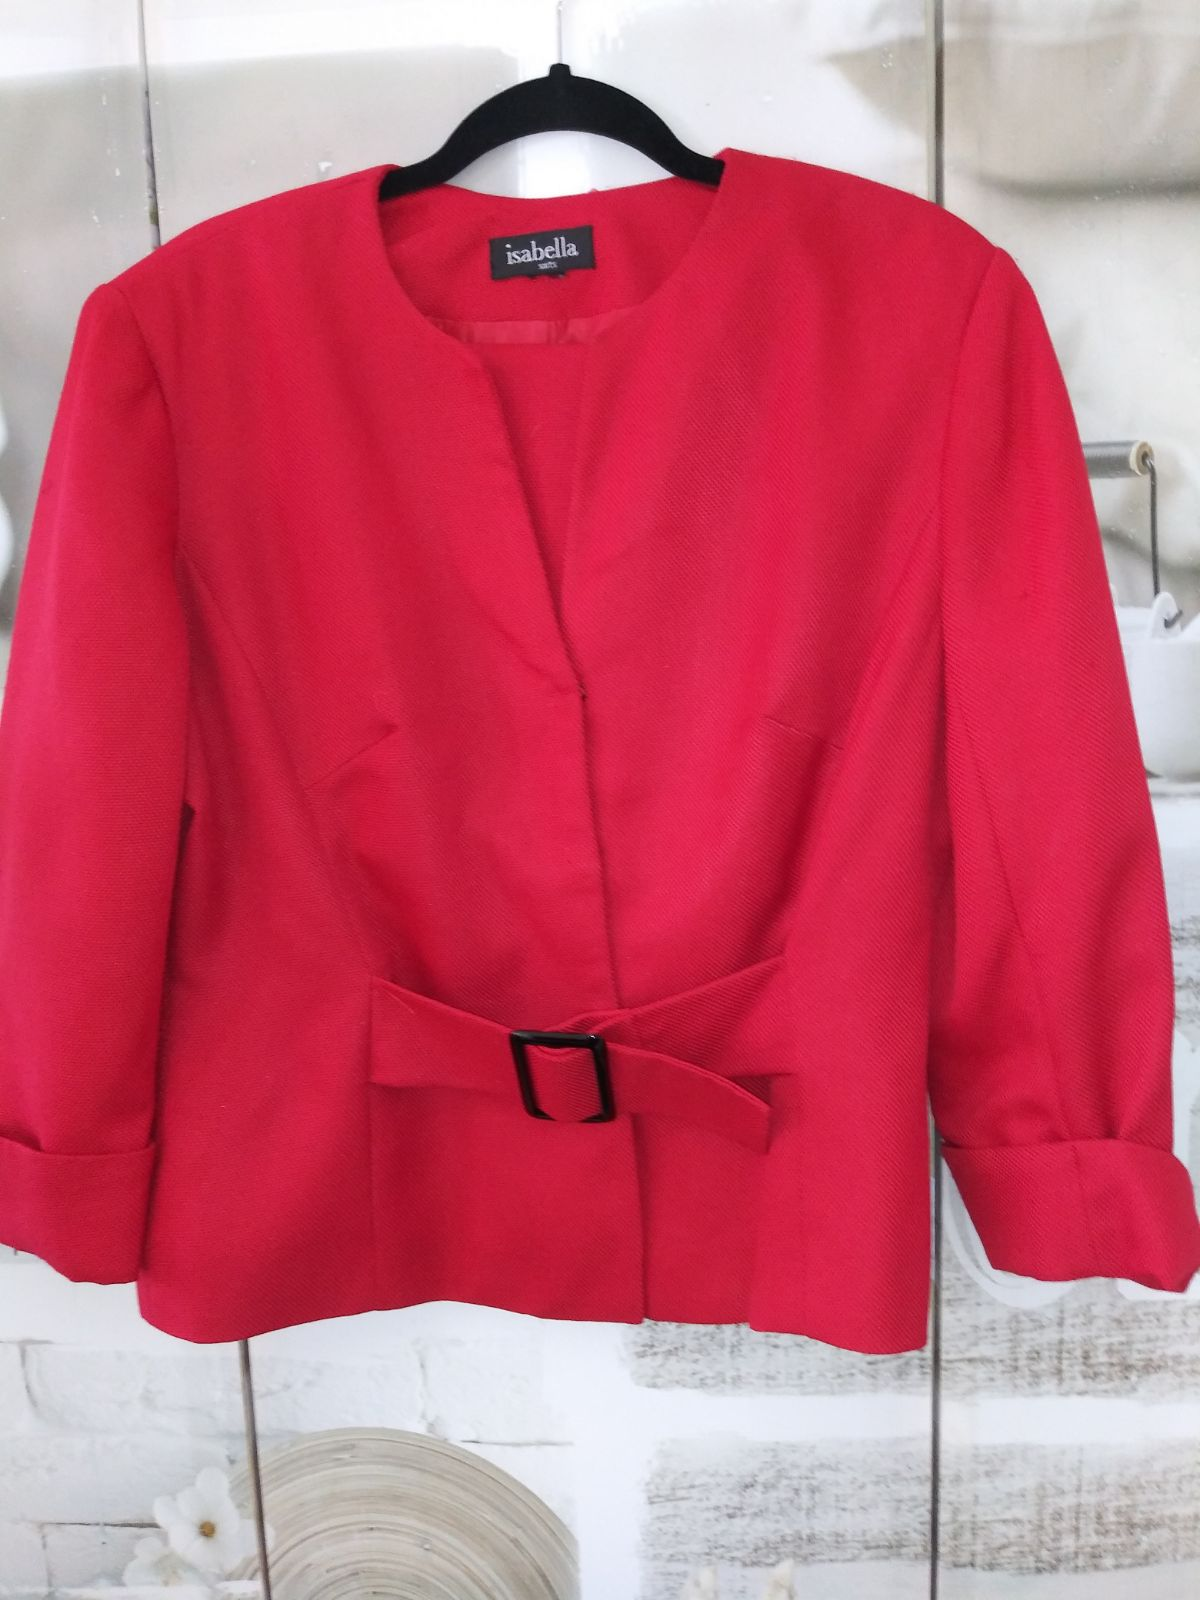 Skirt Suit by Isabella Sz. 14